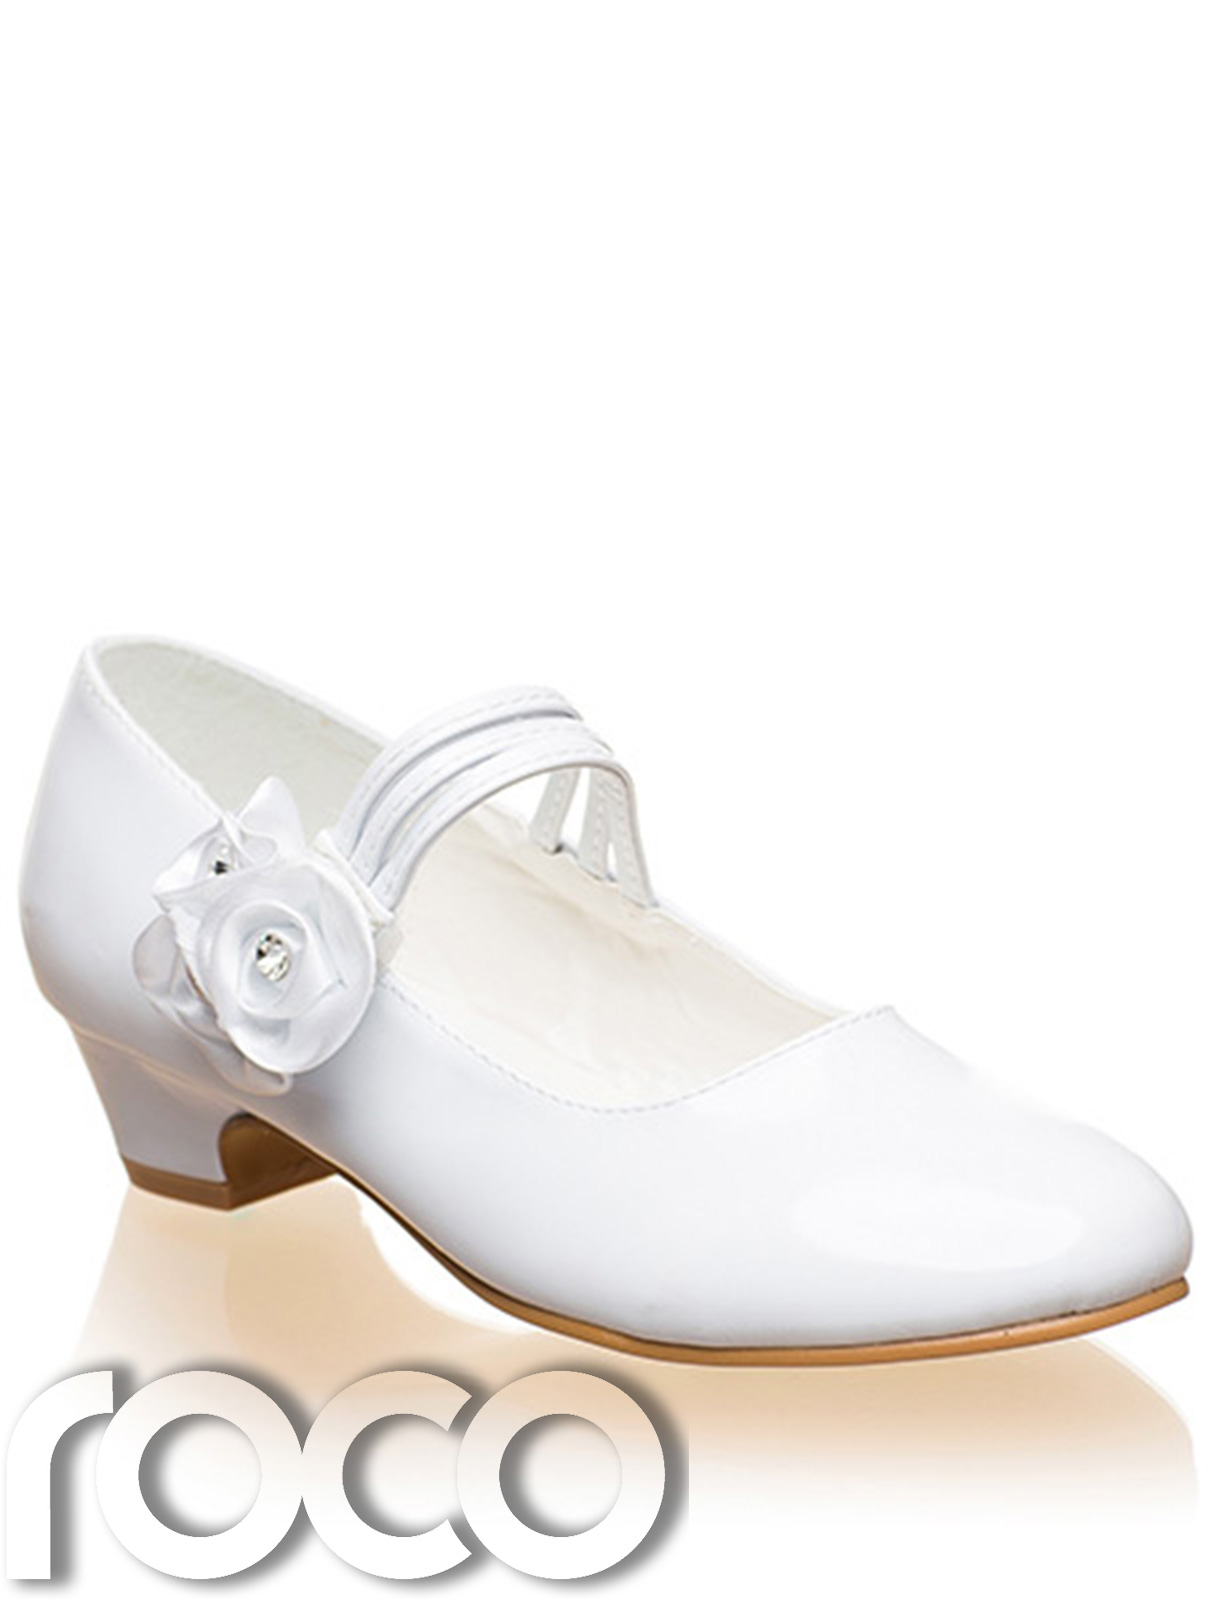 Girls White Shoes Communion Prom Flower